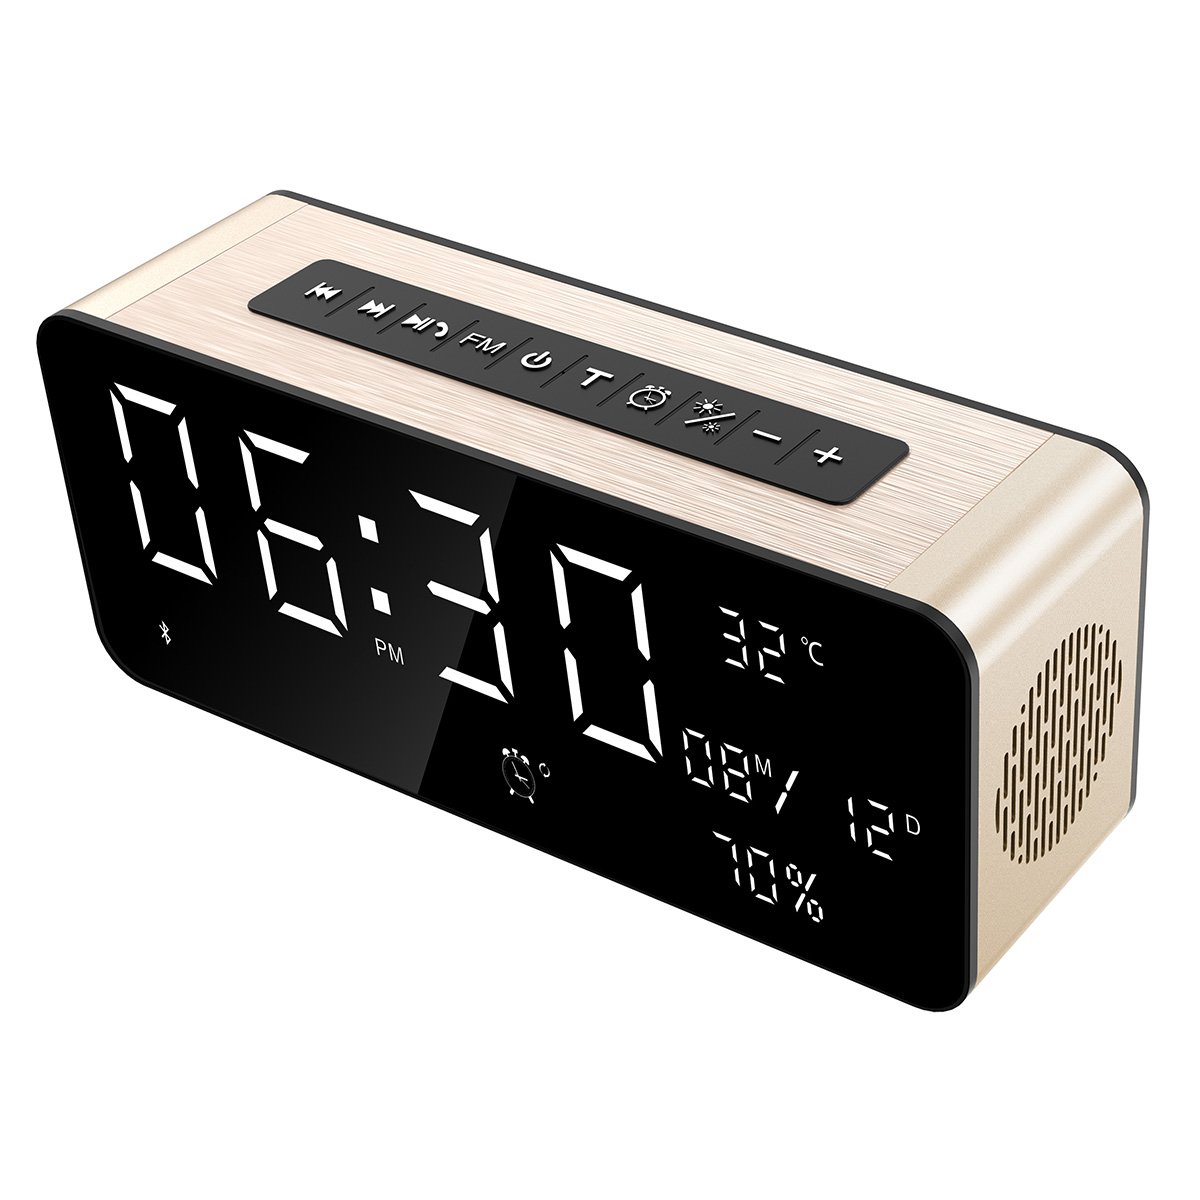 98723d9149f 12W Bluetooth speaker with alarm clock and temperature-蓝牙音箱 ...